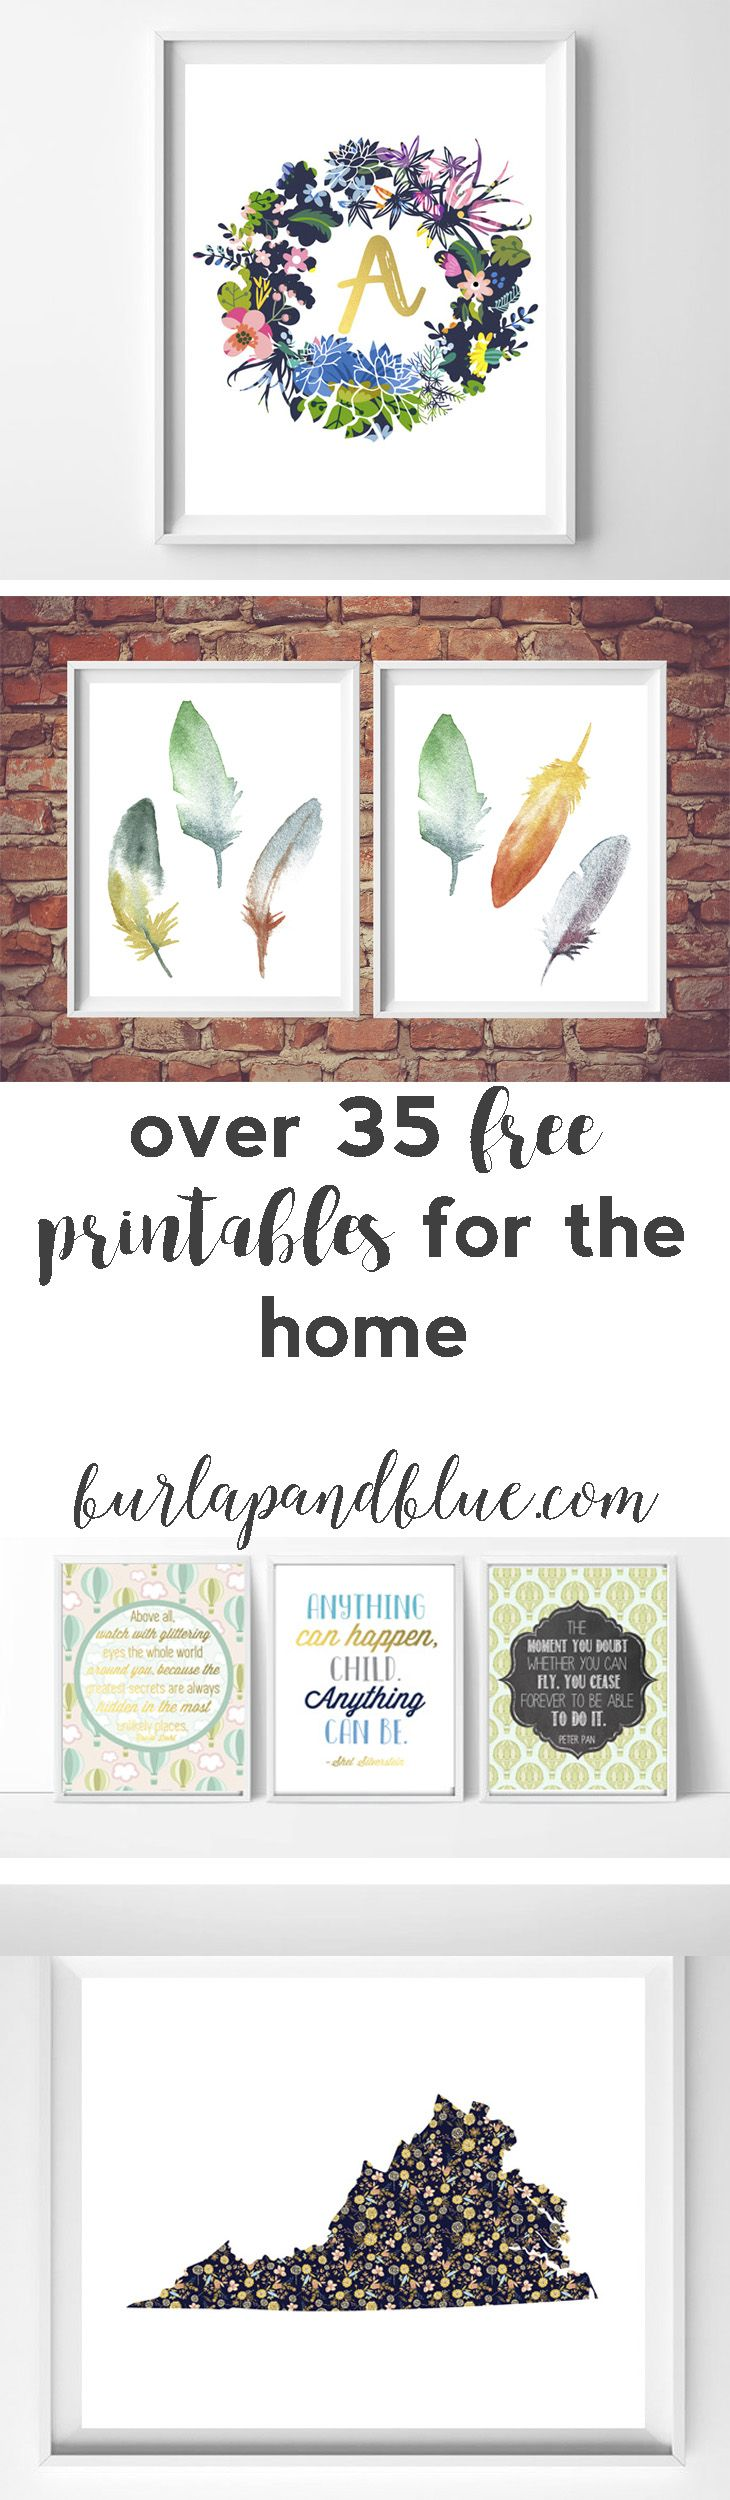 Attractive Printable Home Decor Part - 4: Free Printables For The Home {over 50 Printable Favorites!}